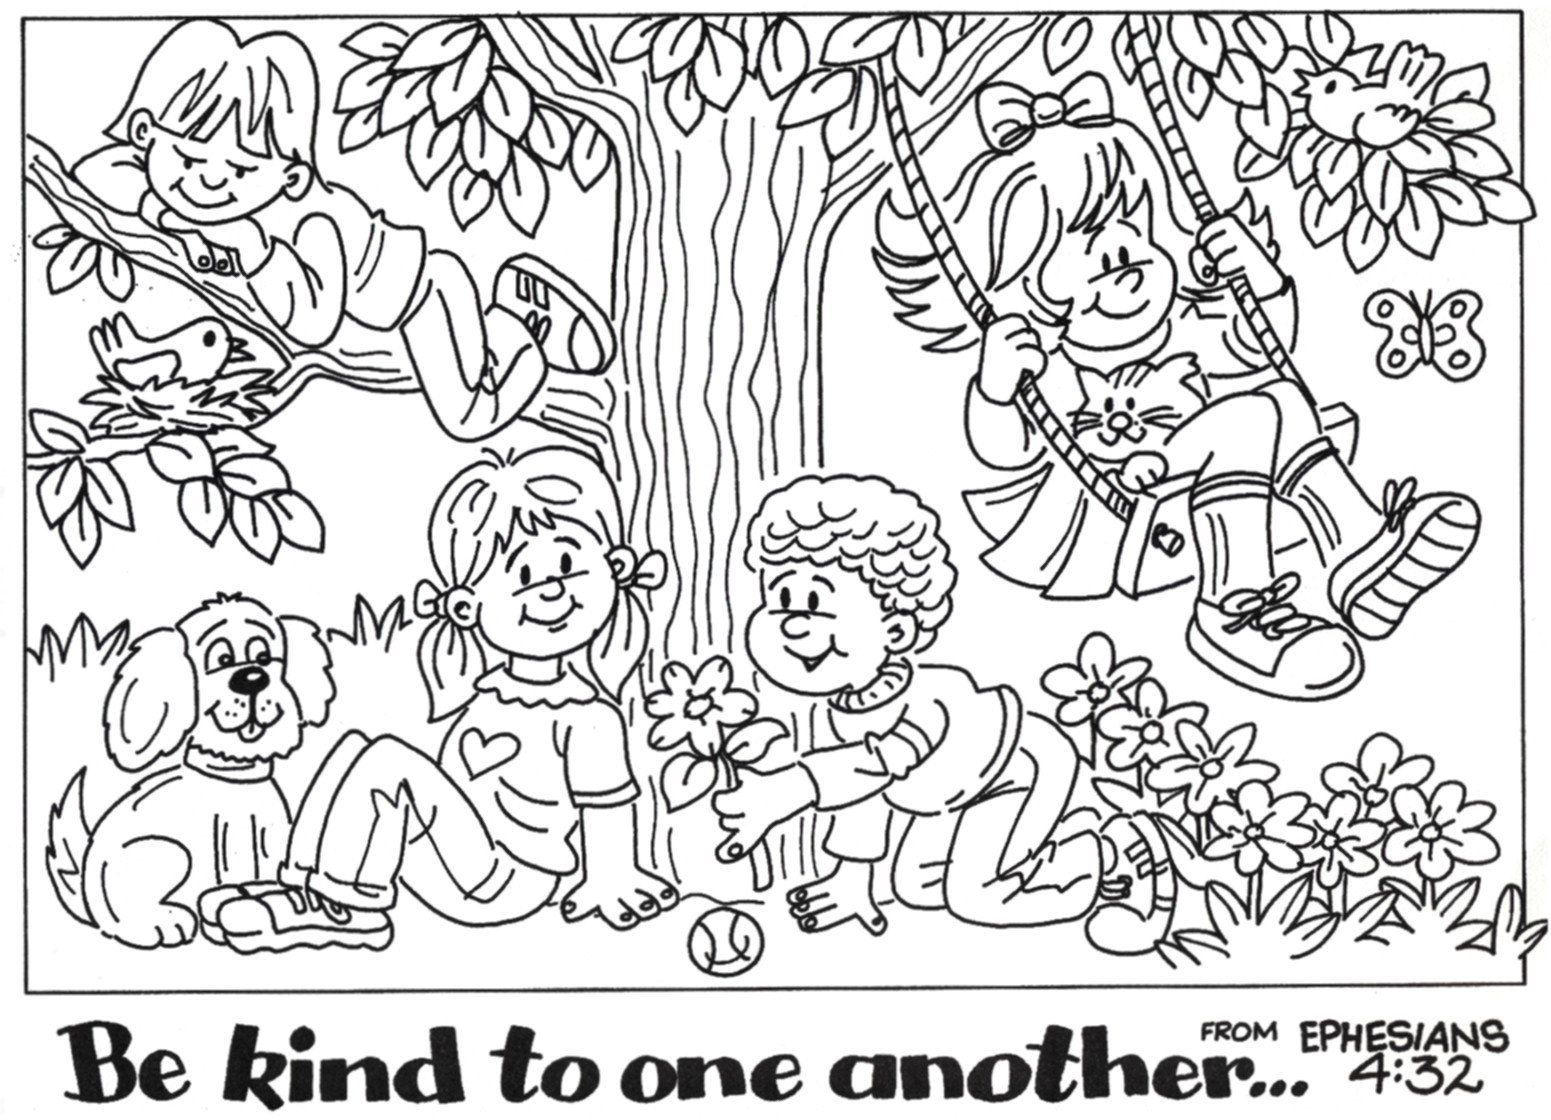 Bible Coloring Pages Friendship Best Coloring Page Site Bible Coloring Pages School Coloring Pages Christian Coloring